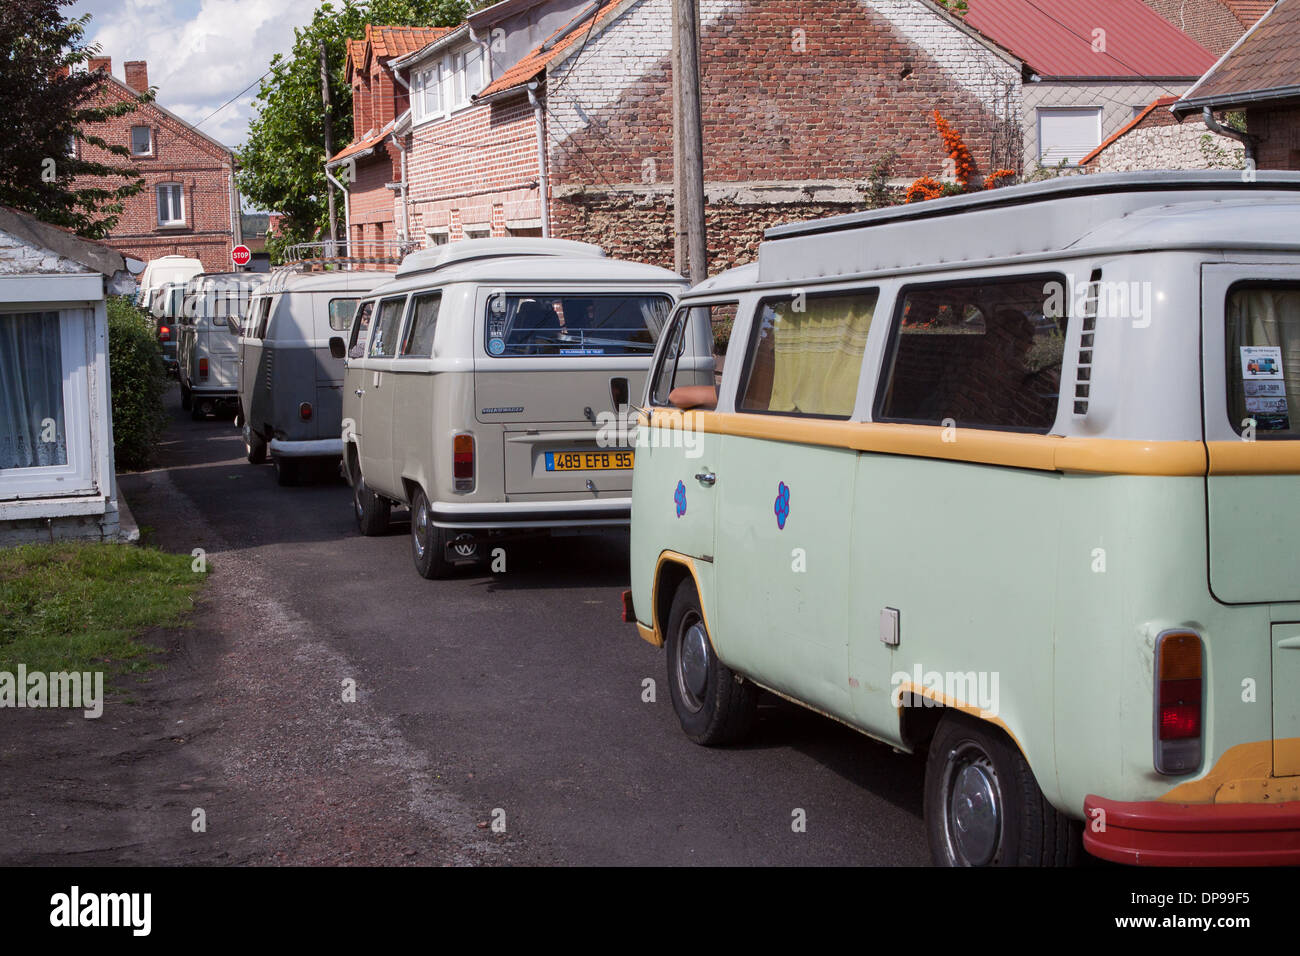 VW Campervans drive through a street in France - Stock Image